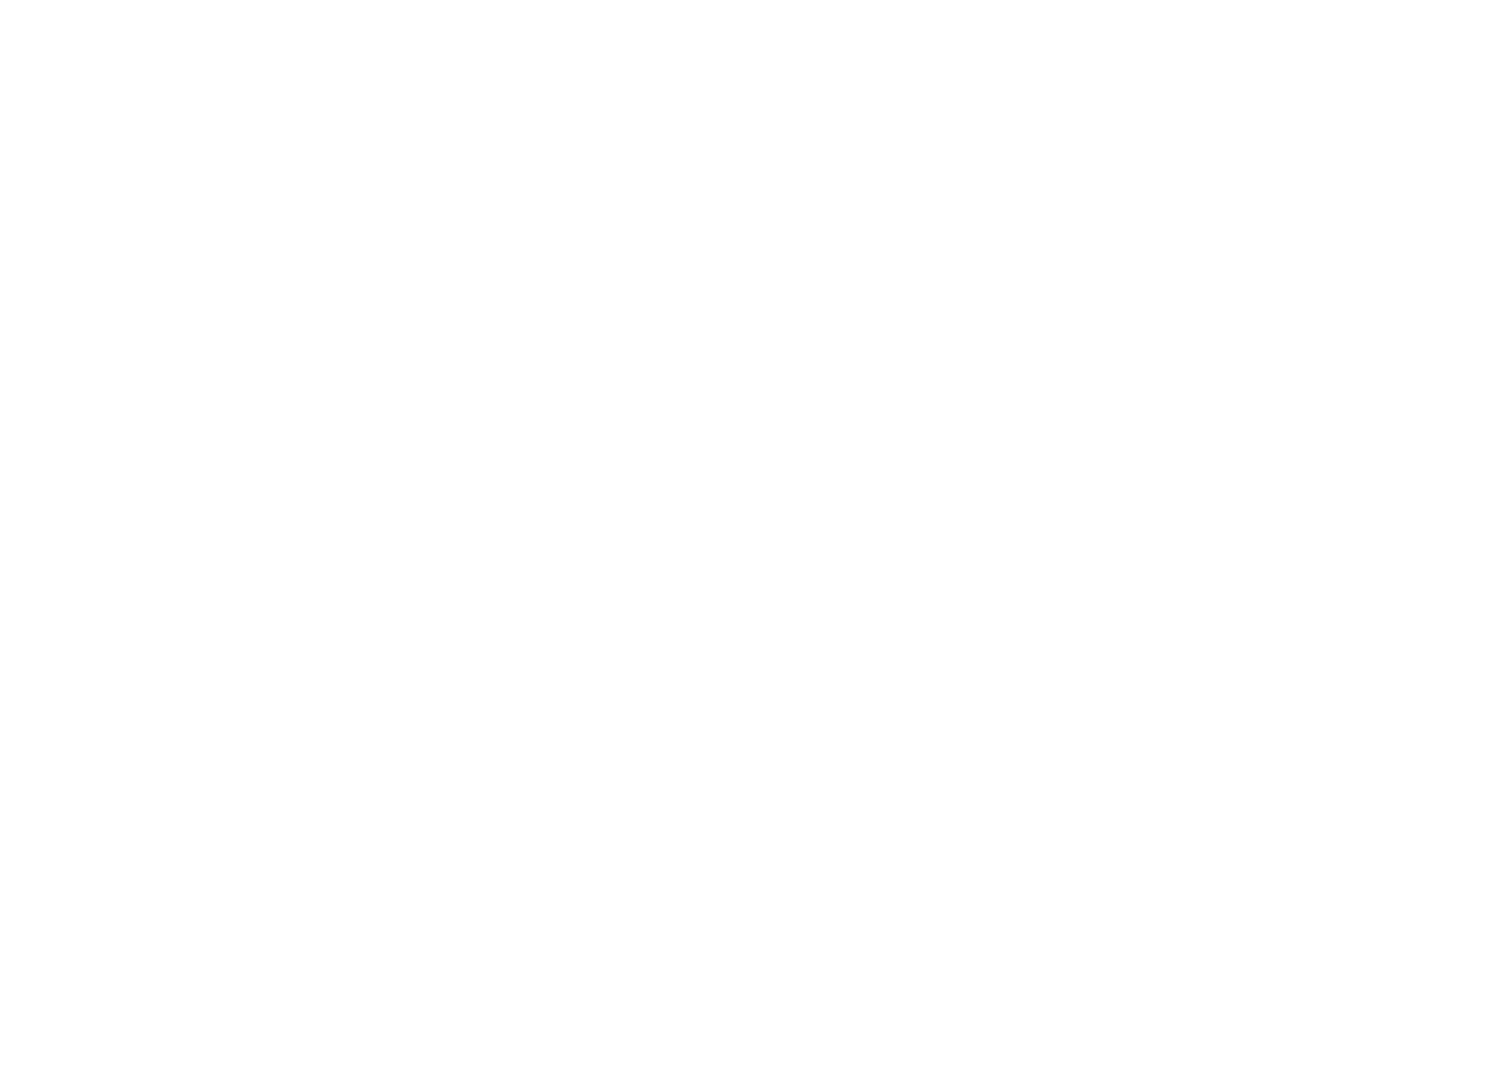 Winery Mechanical Systems